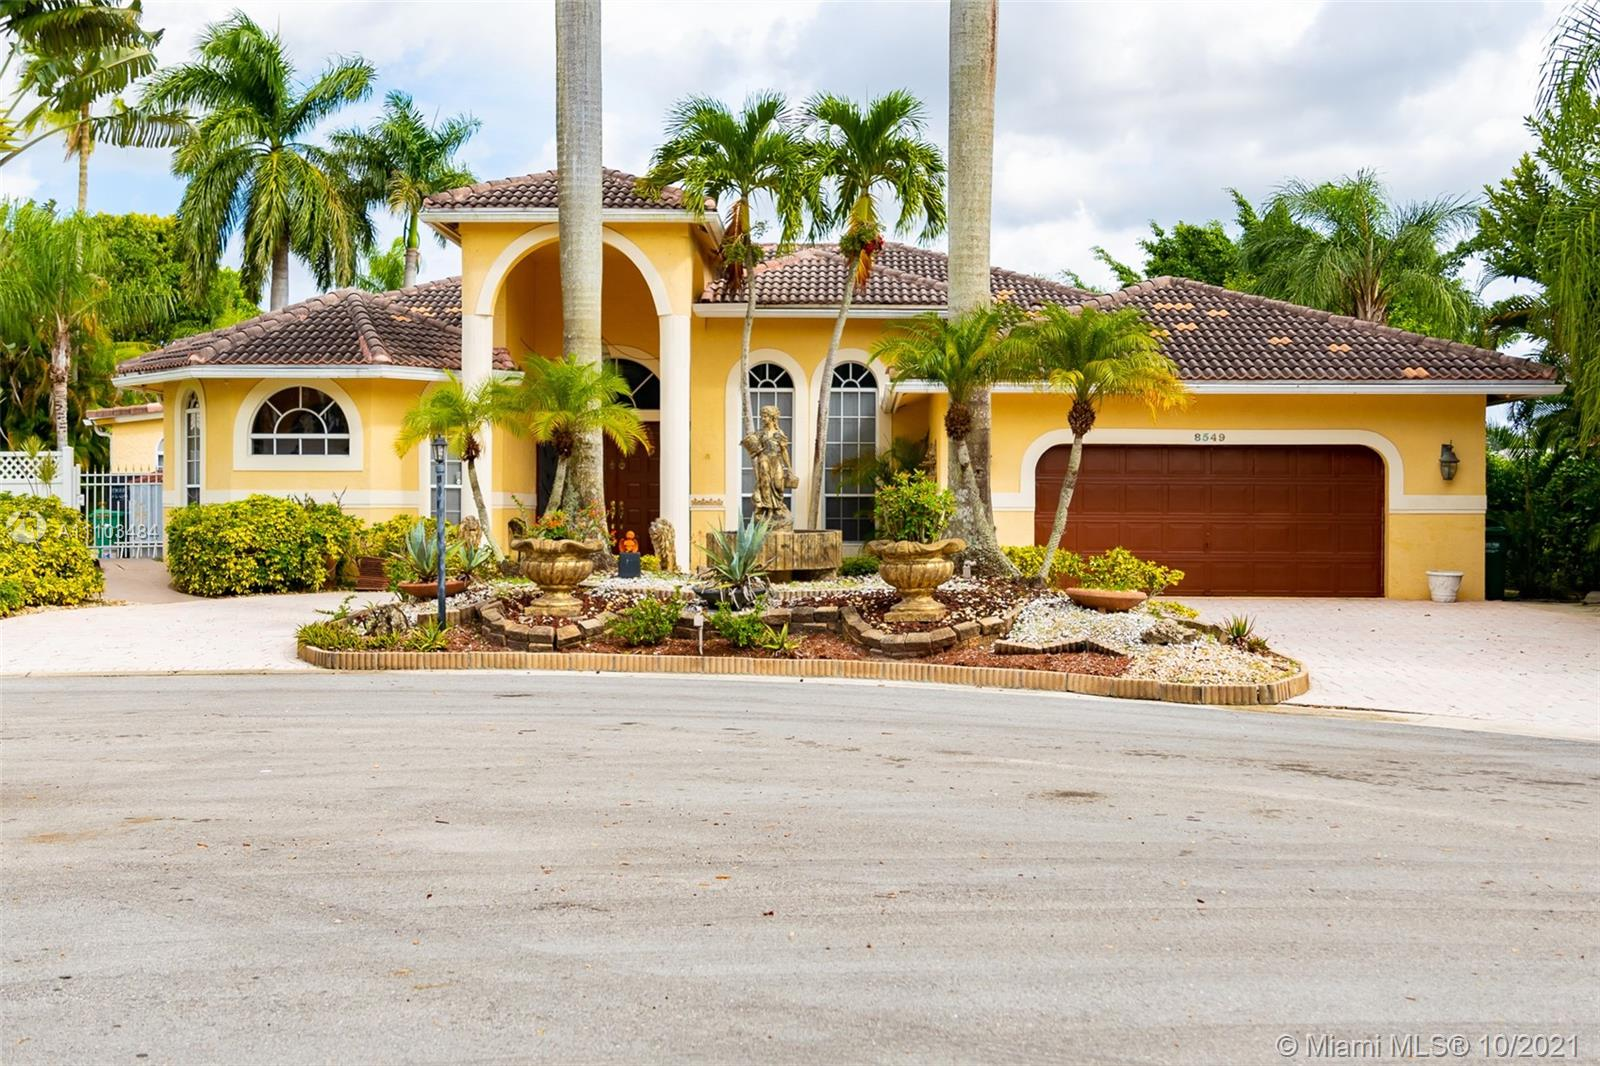 8549 45th St, Coral Springs, Florida 33065